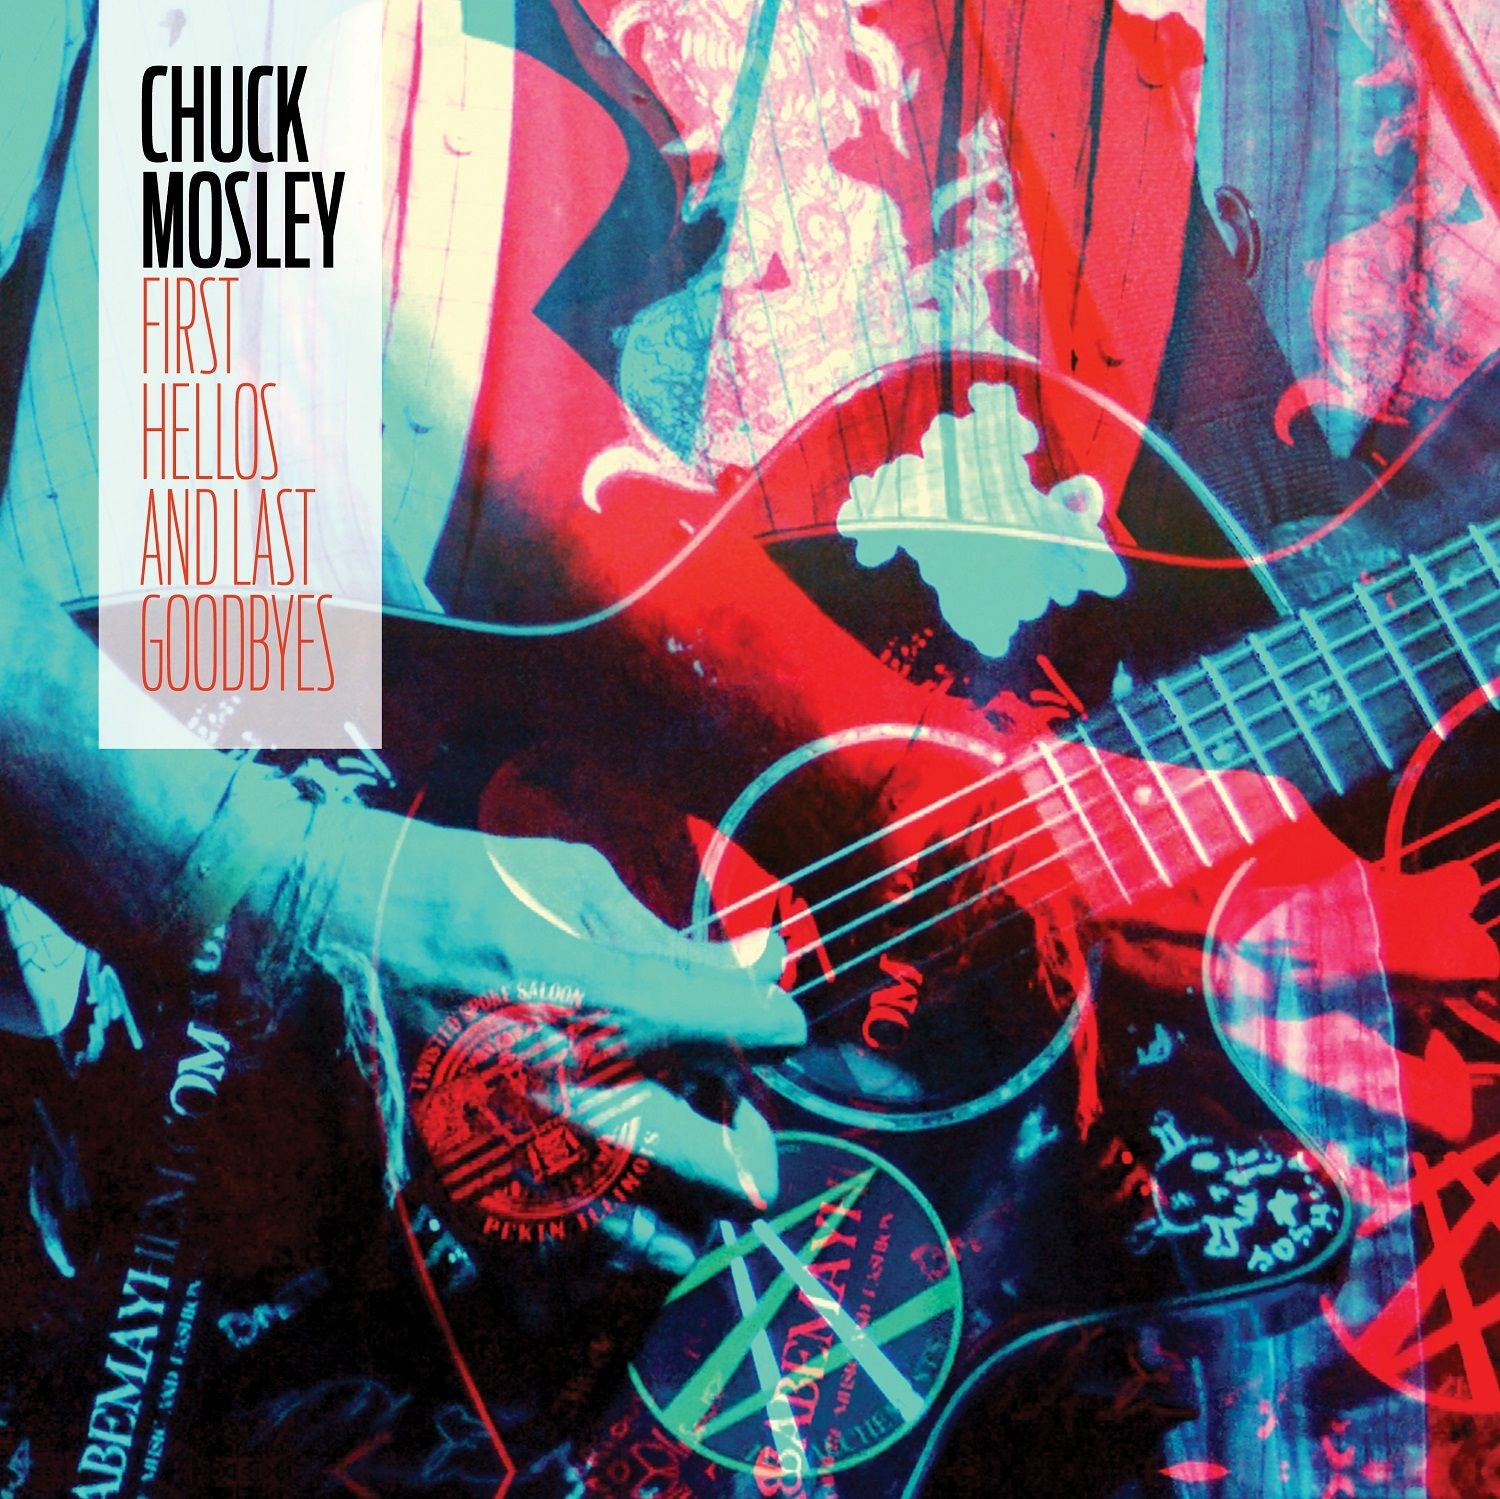 Chuck Mosley - First Hellos And Last Goodbyes (RSD 2020 Drop Two) Aqua Blue Colour Vinyl Record Album